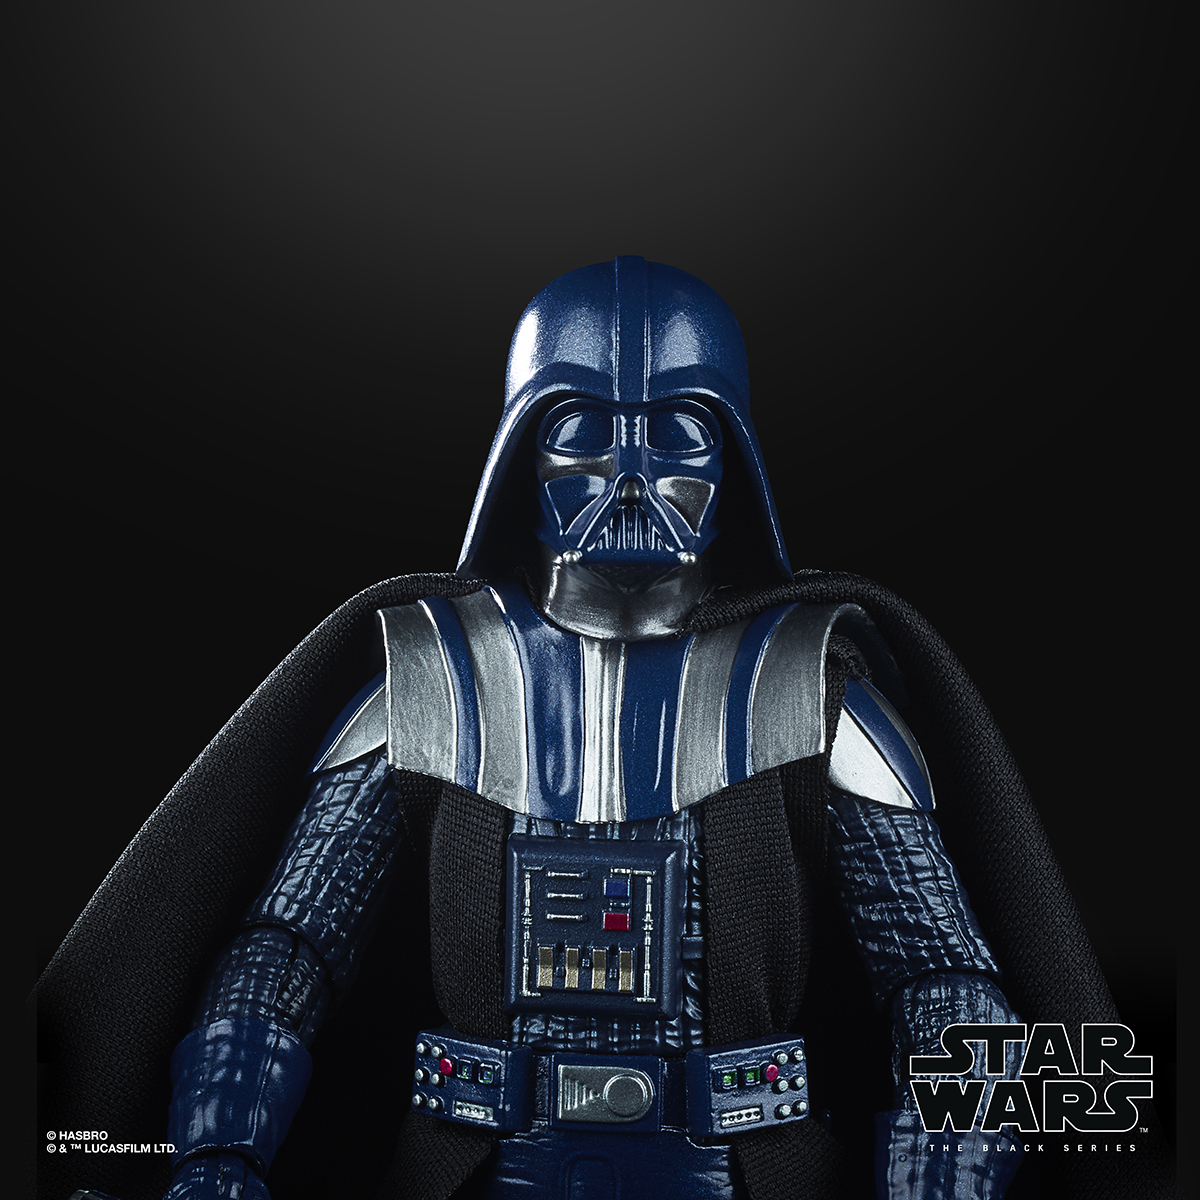 star-wars-the-black-series-carbonized-collection-6-inch-darth-vader-figure-oop-2